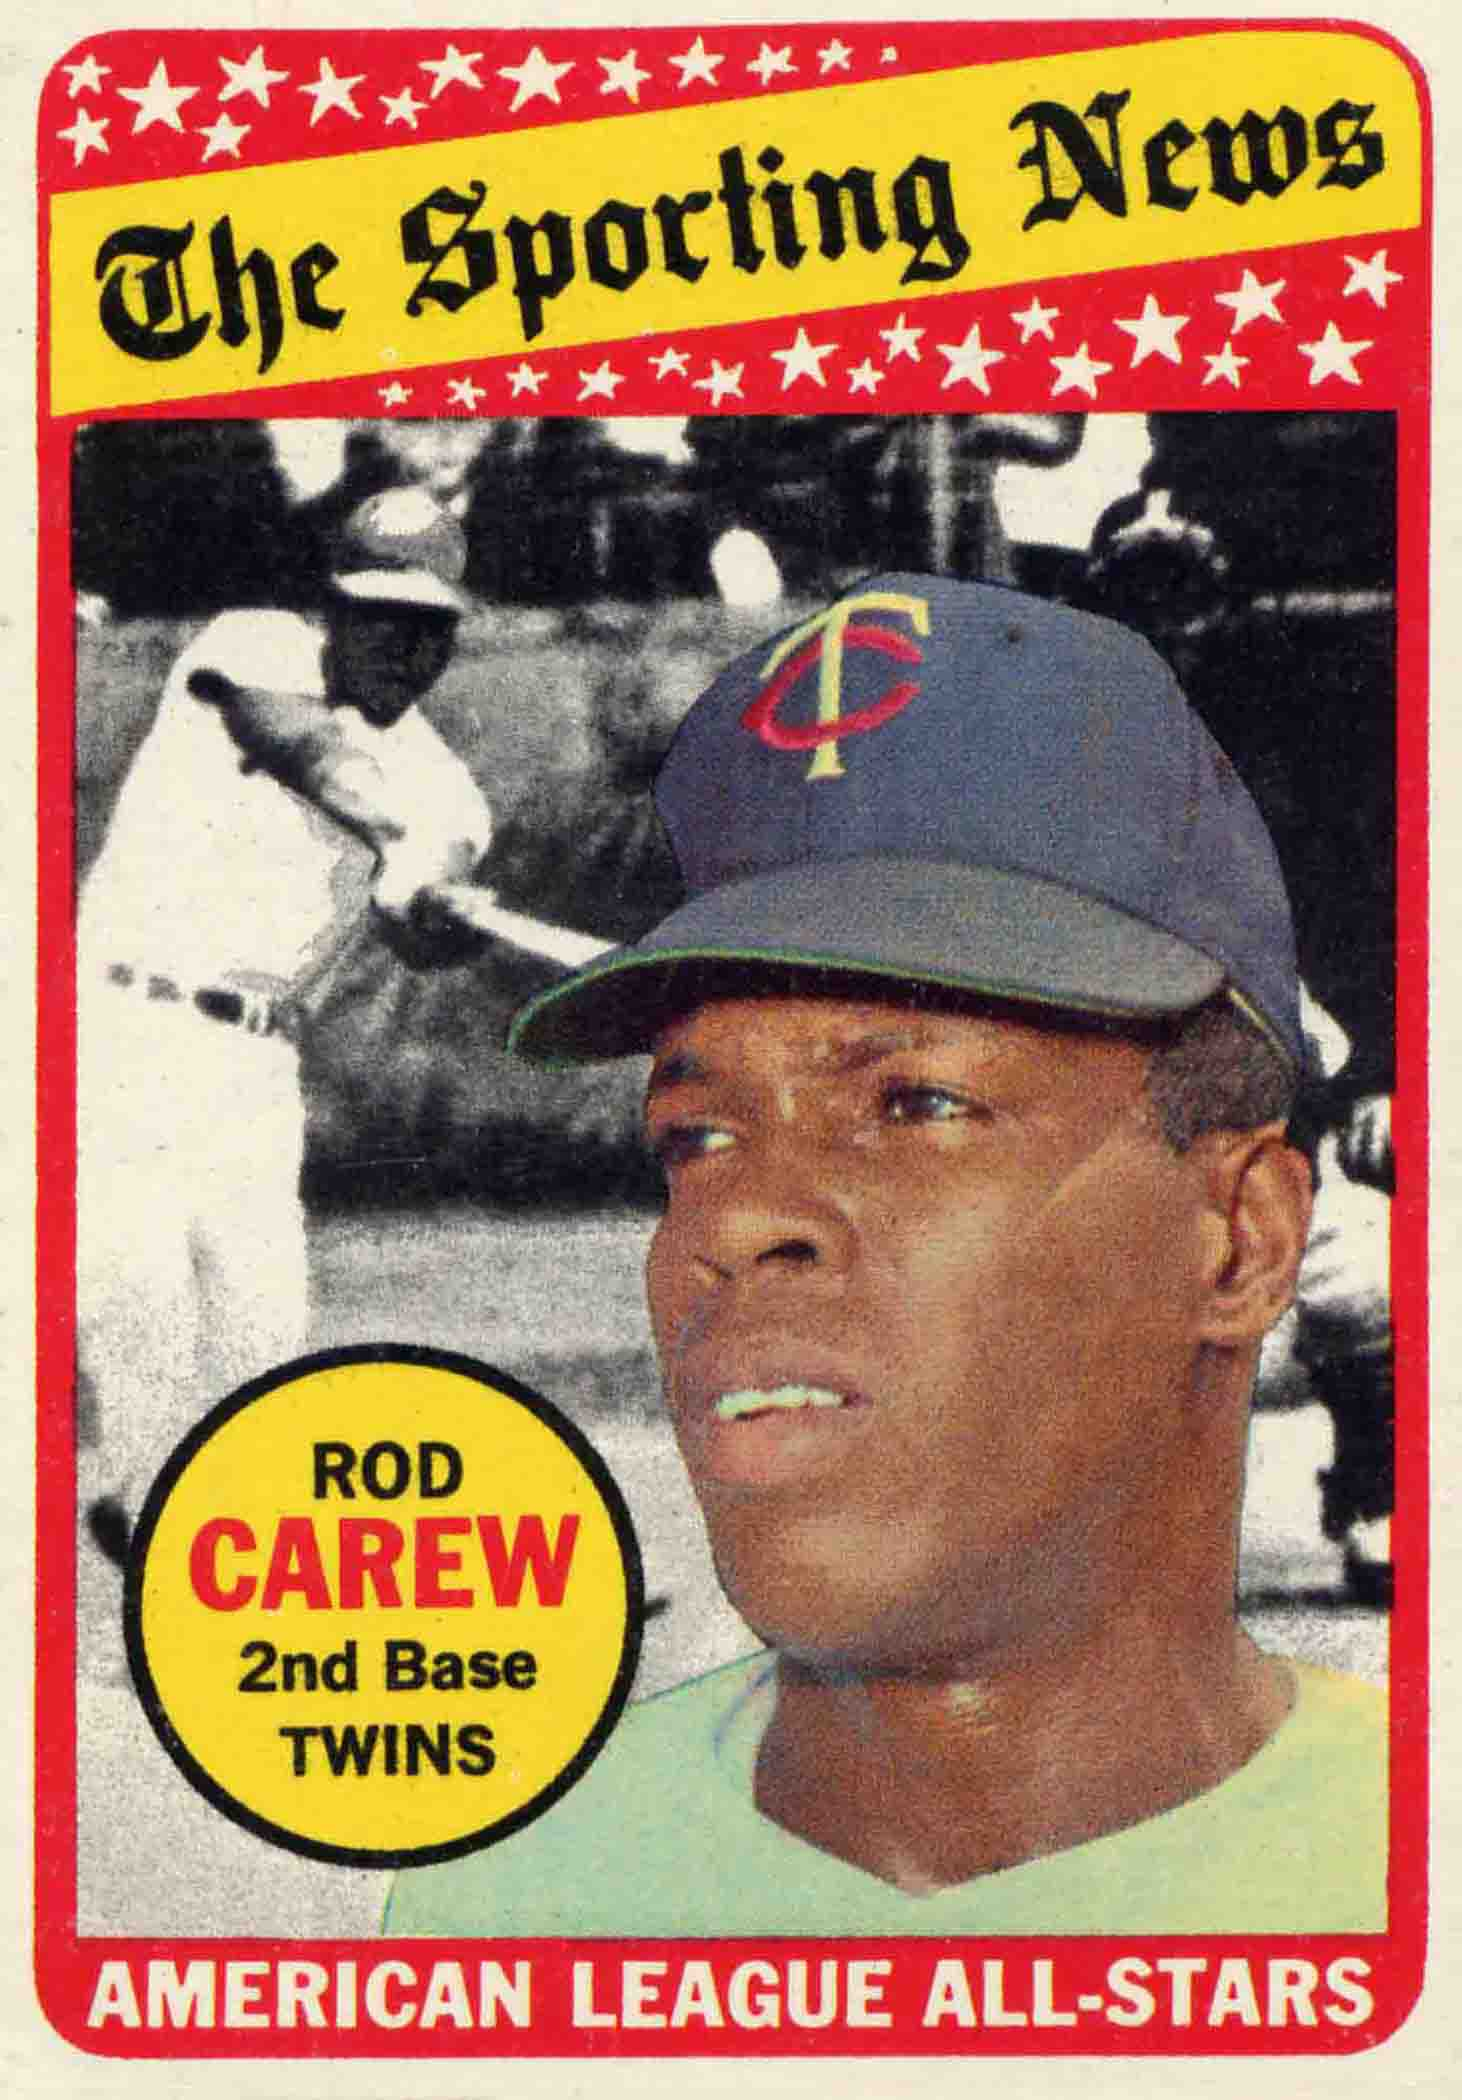 1969 Topps All-Star